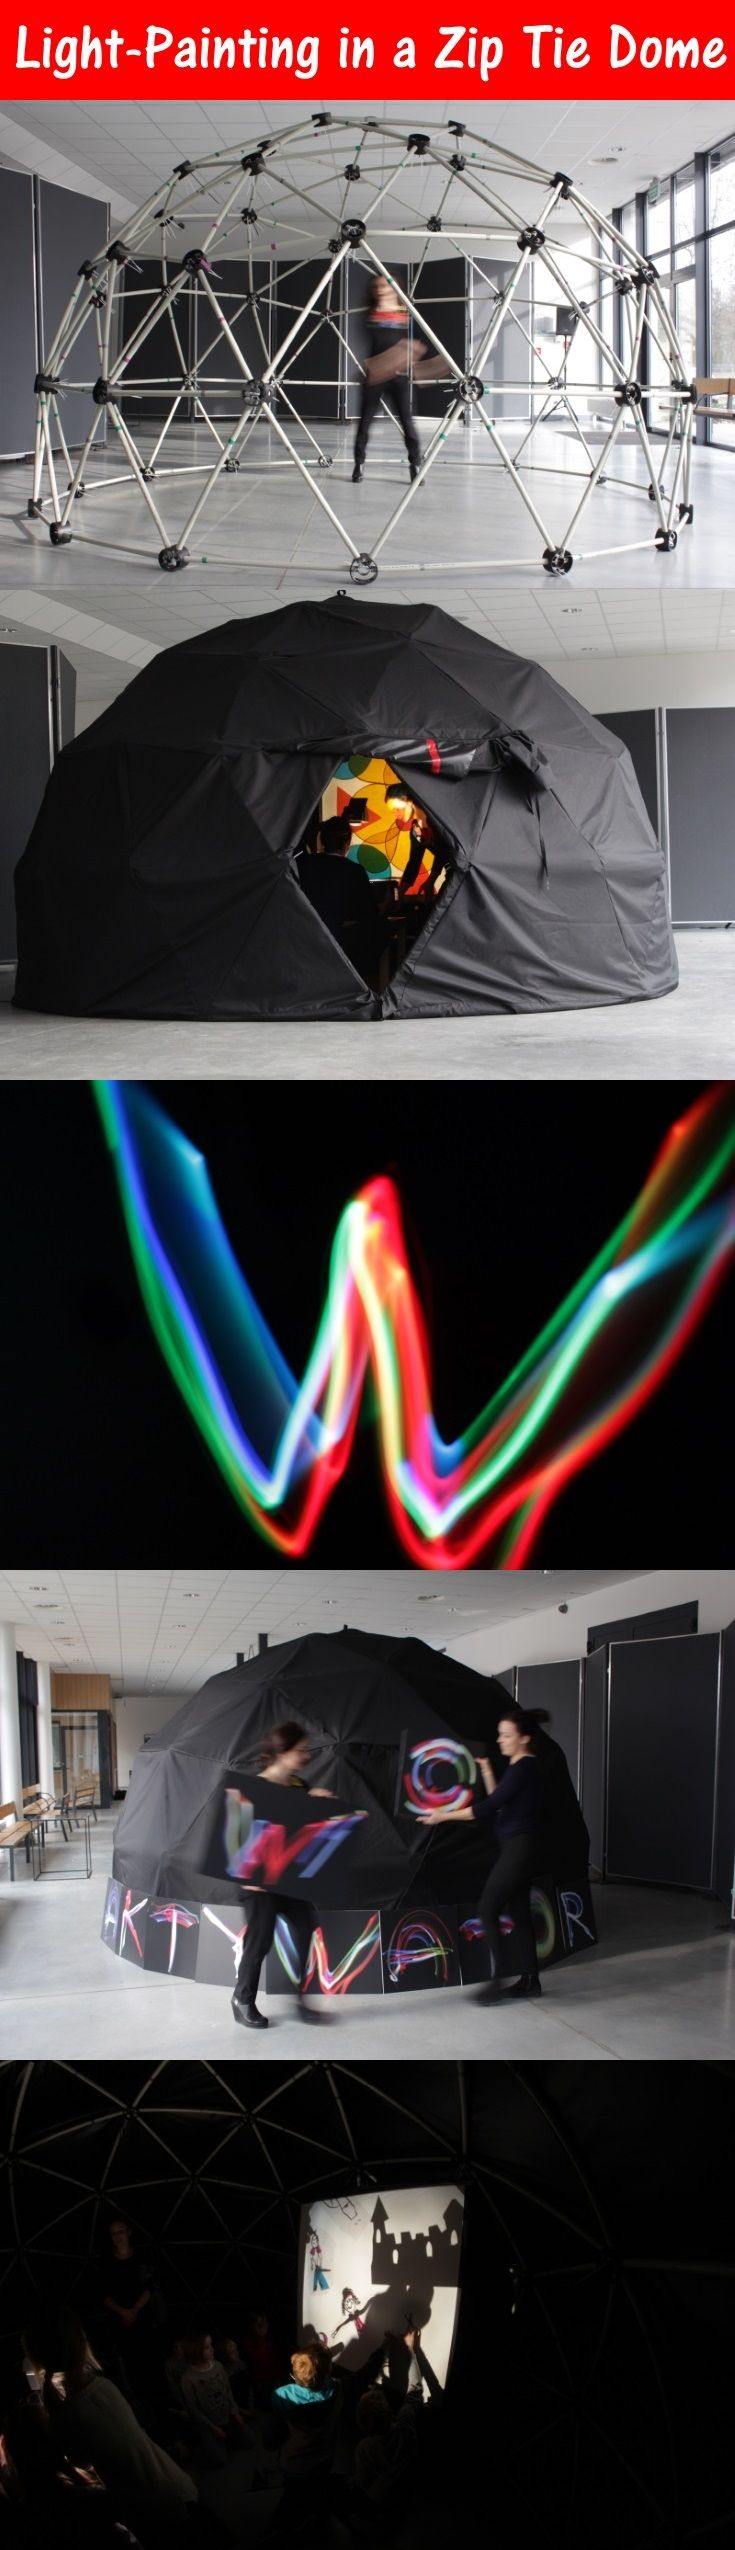 Using a Zip Tie Dome as a darkroom for light-painting for children. Light-painting is by moving a light in front of a long exposure camera for artistic effect.